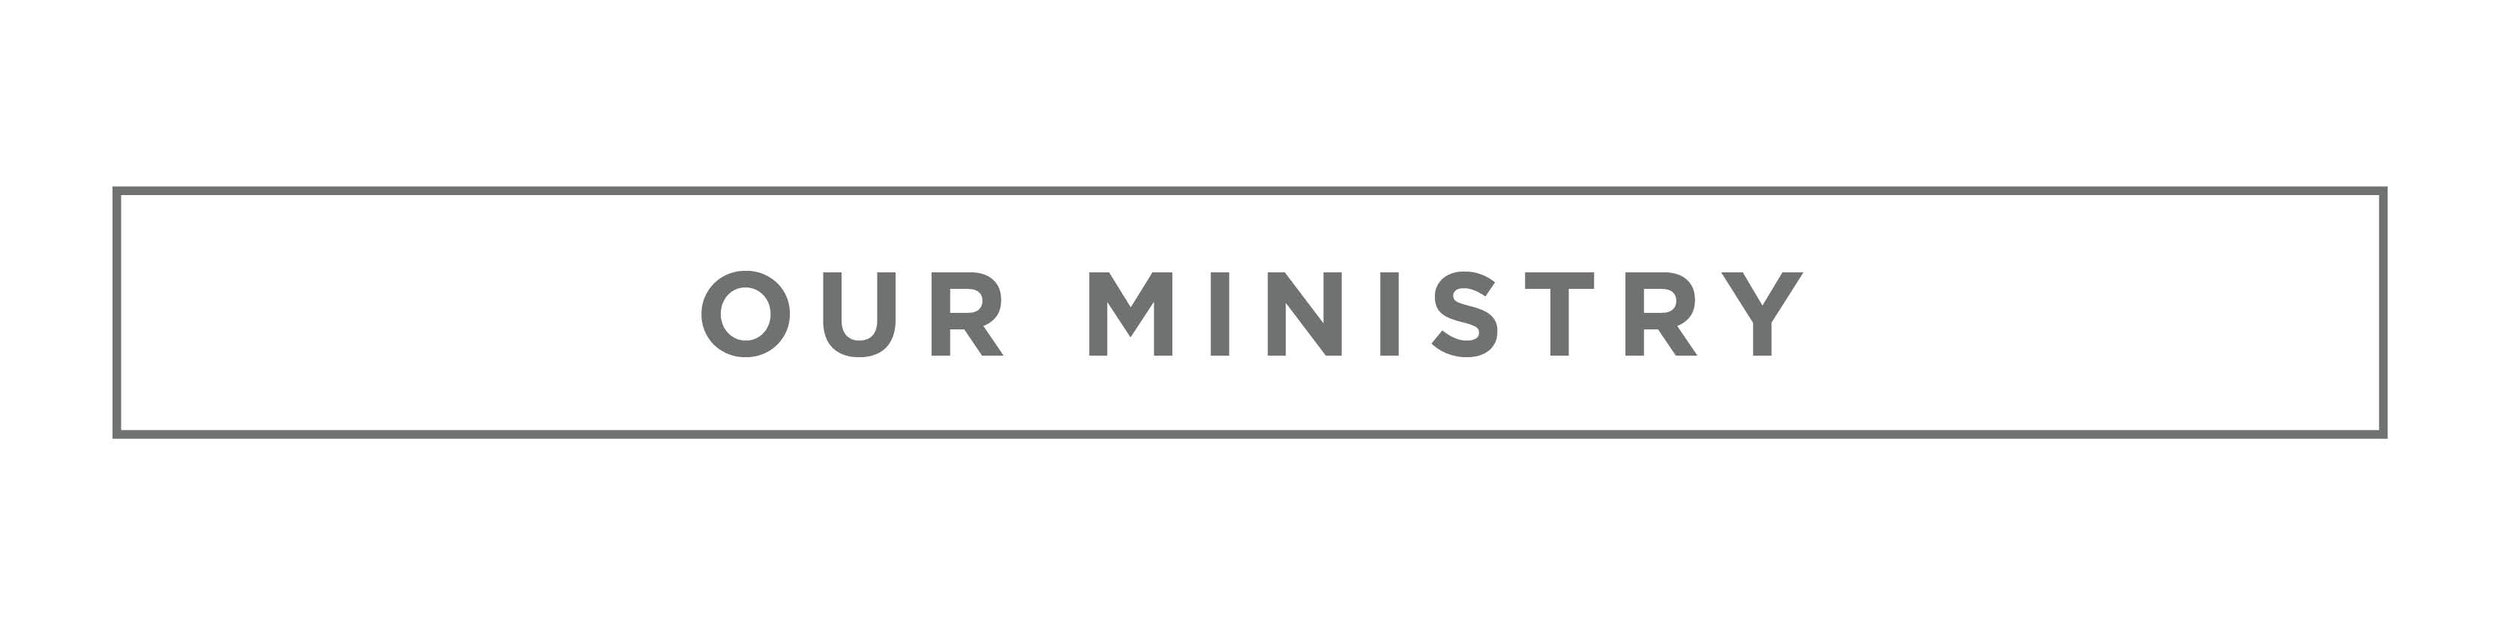 our ministry button.jpg